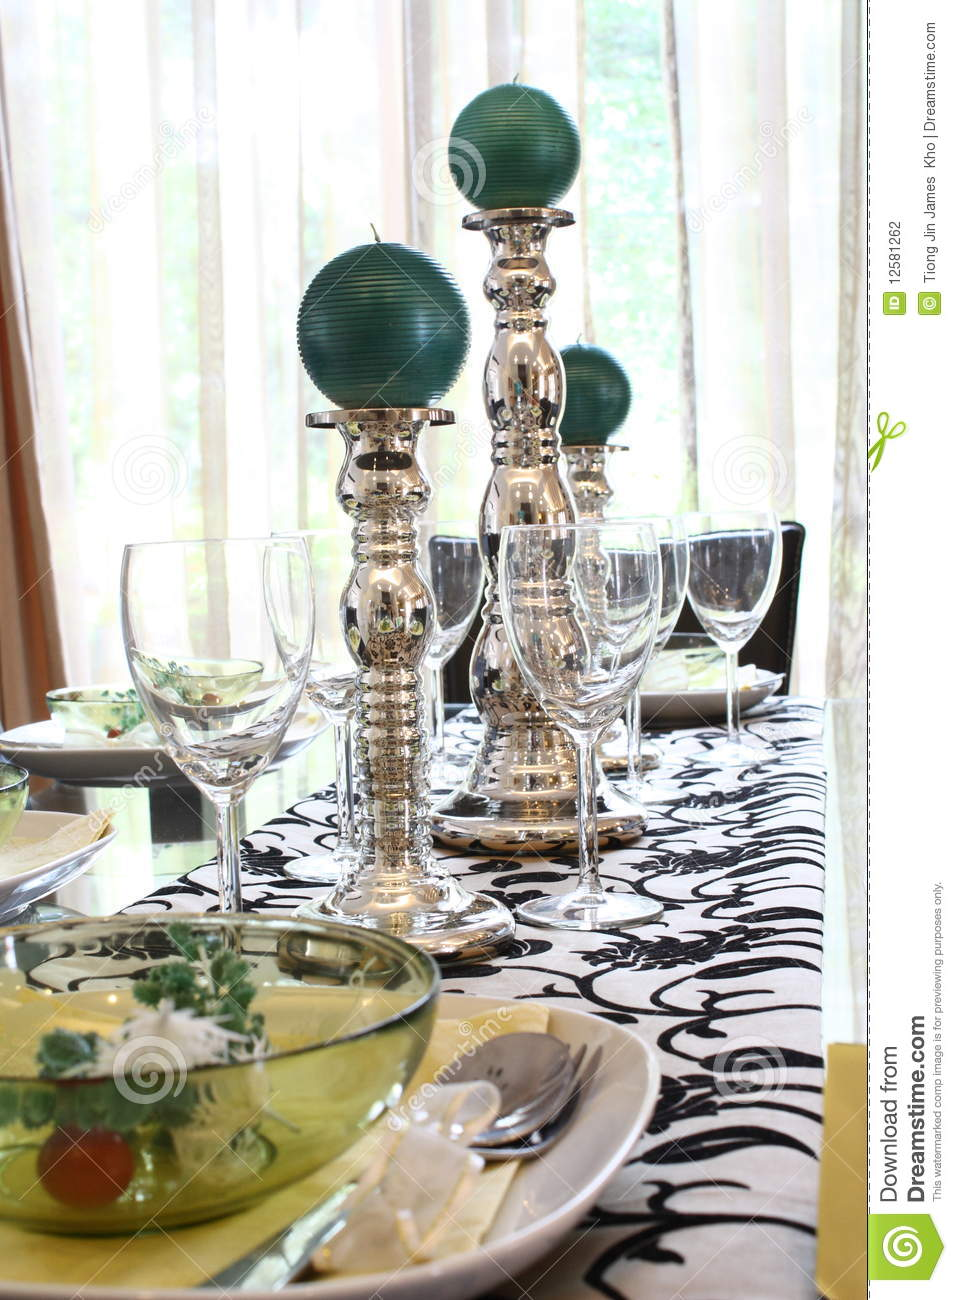 Dining Table Arrangement Stock Photography Image 12581262